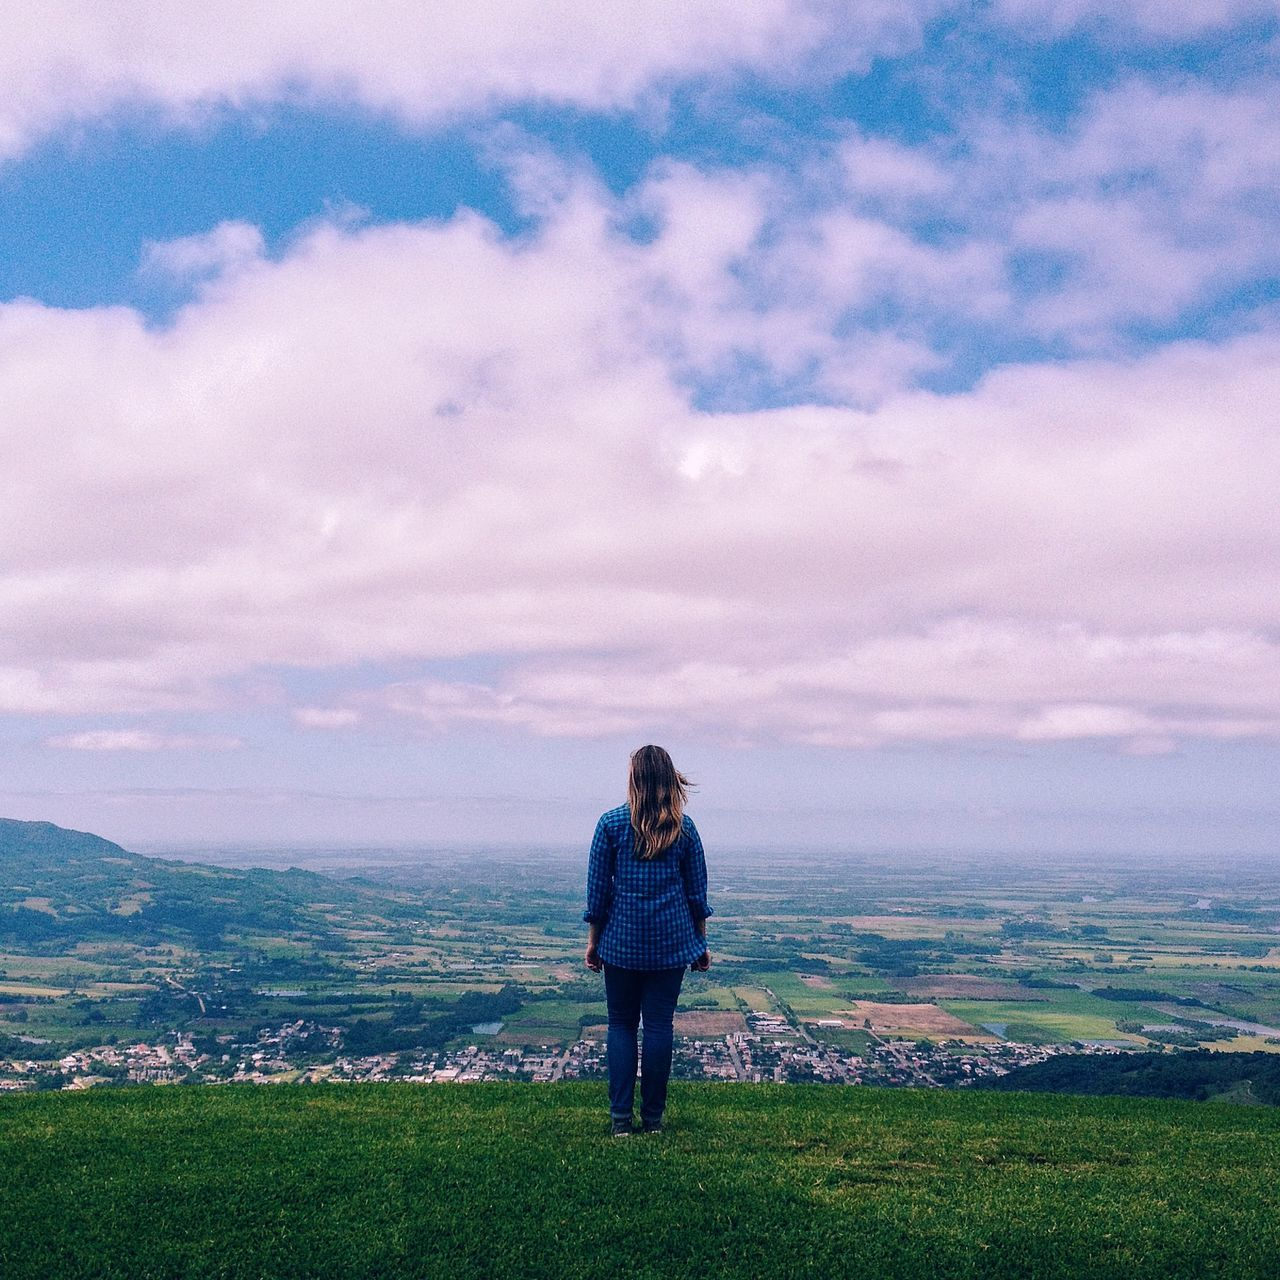 The Girl and the Horizon Adapted To The City Adult Adults Only Beautiful Girl Beauty In Nature Cloud - Sky Day Field Freedom Girl Grass Horizon Landscape Leisure Activity Looking Down Nature One Person Outdoors People Rural Scene Sky Skyline Young Adult